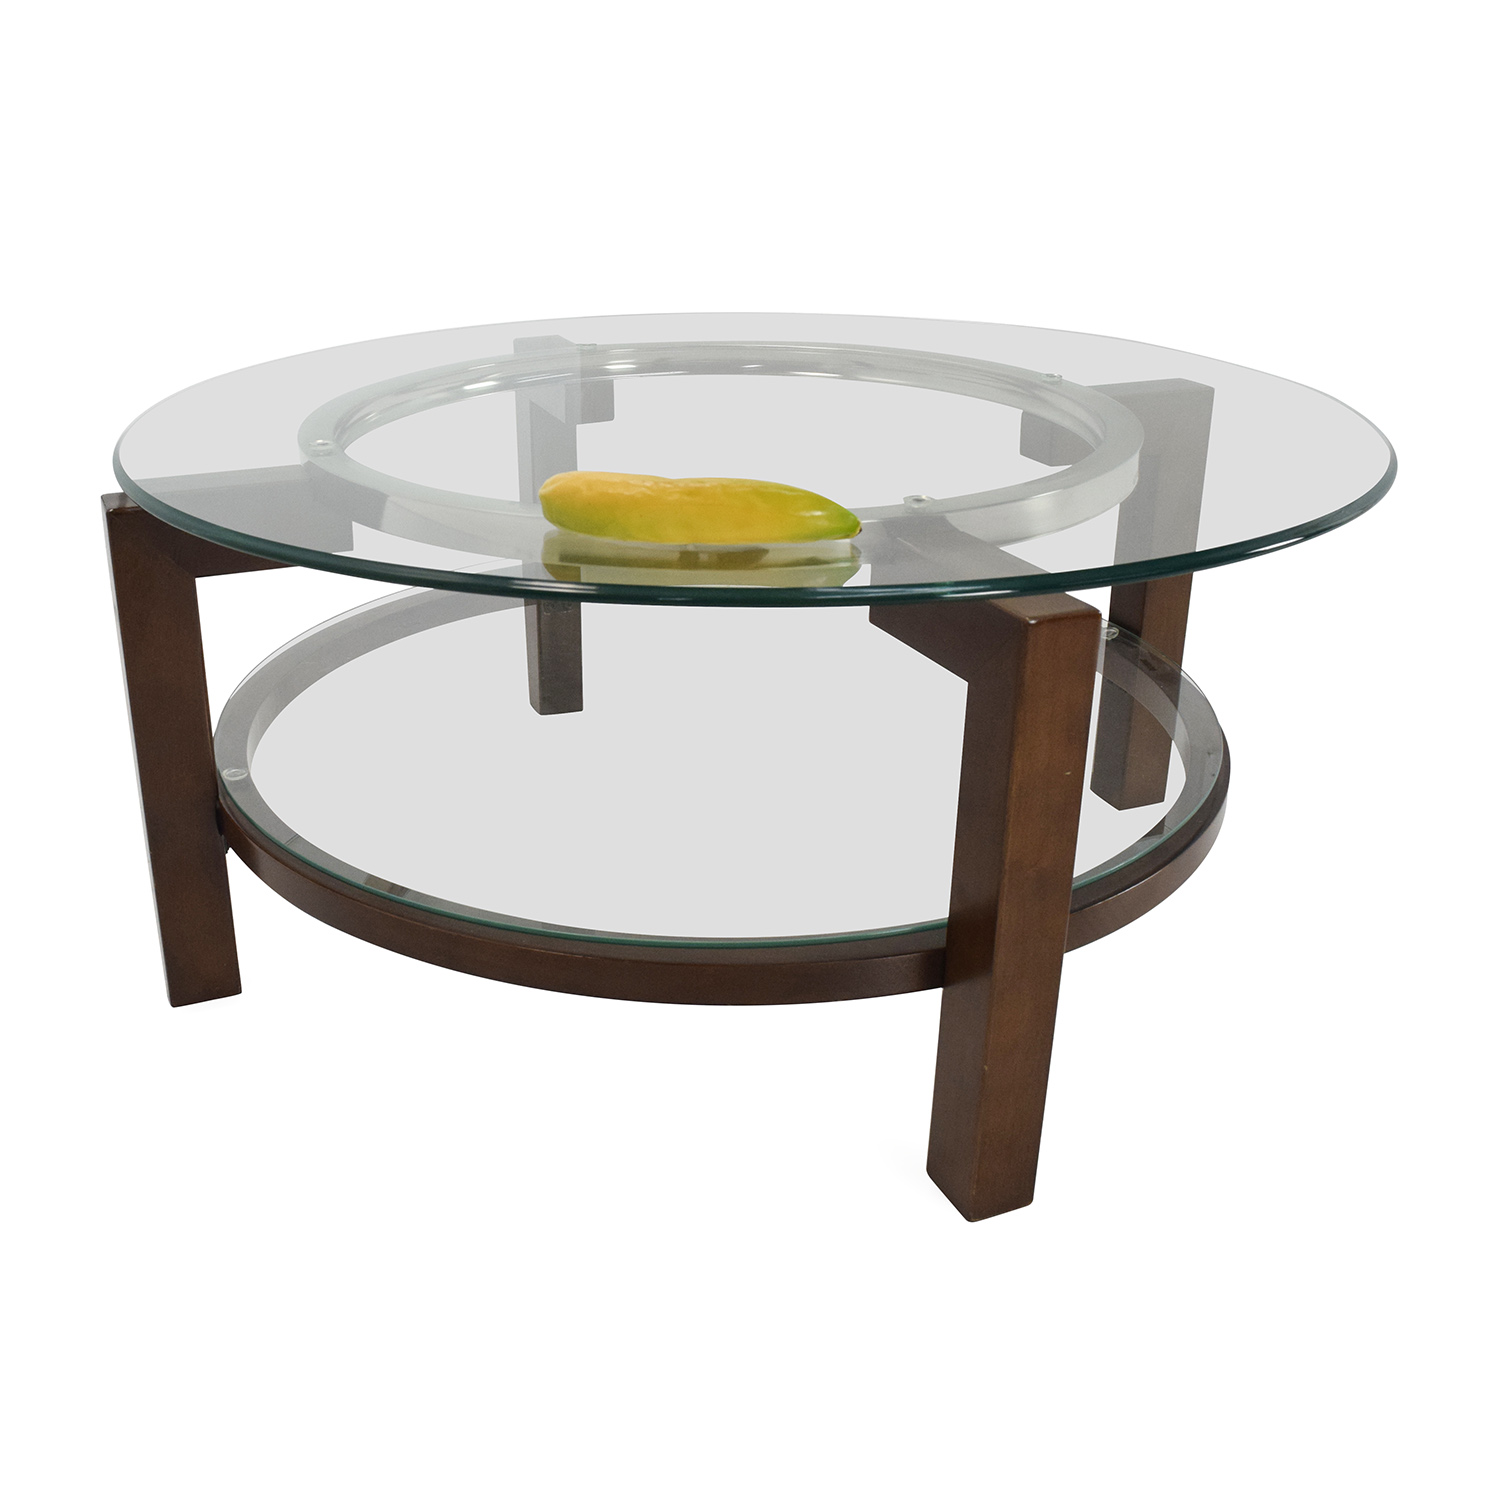 Macy's Macy's Glass Top Coffee Table / Tables